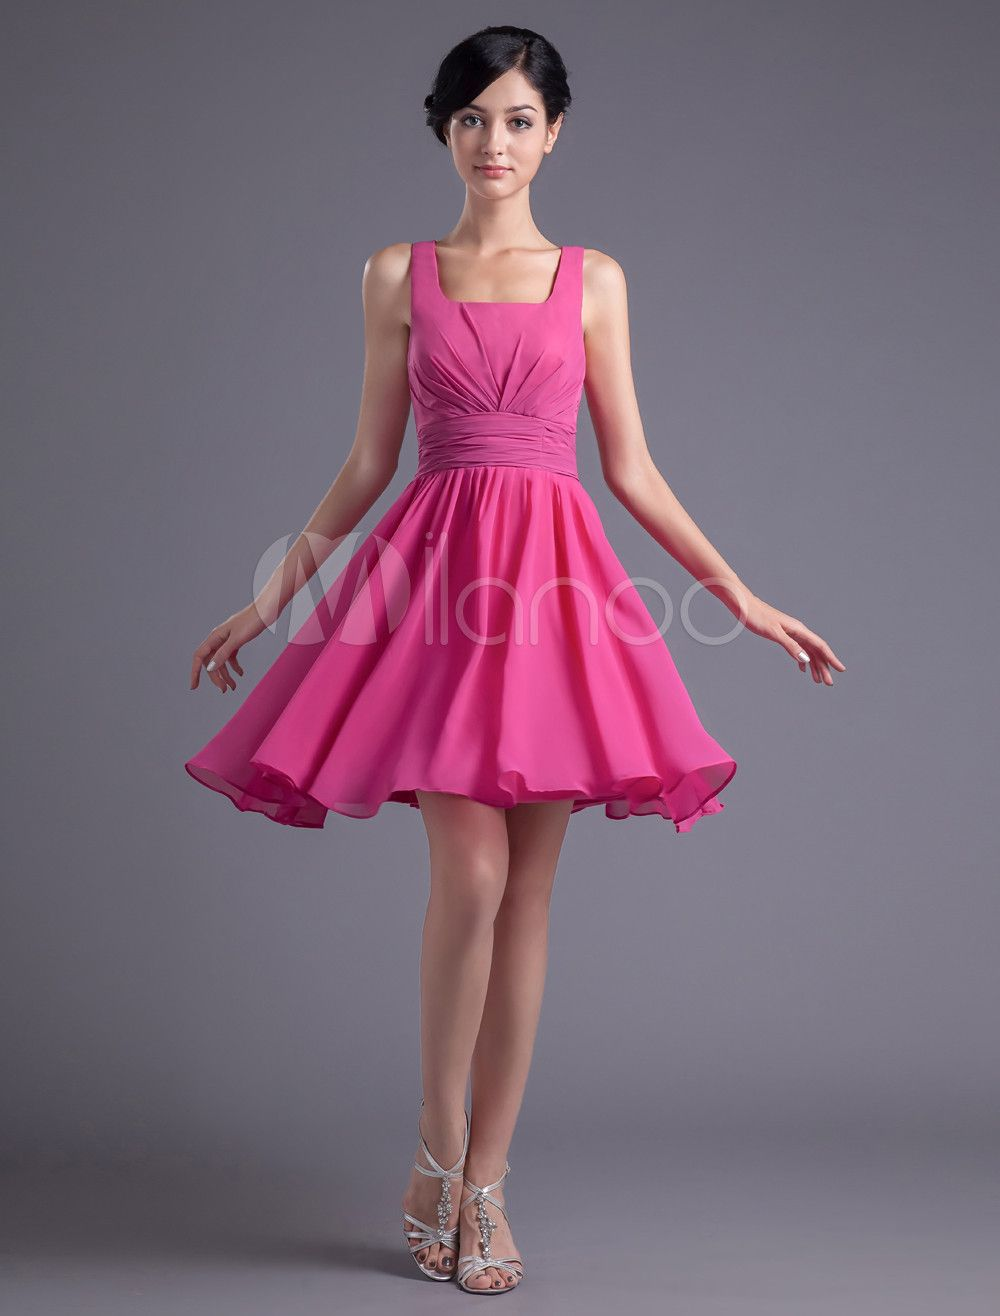 A-line Knee-Length Bridesmaid Dress. Get surprising discounts up to ...